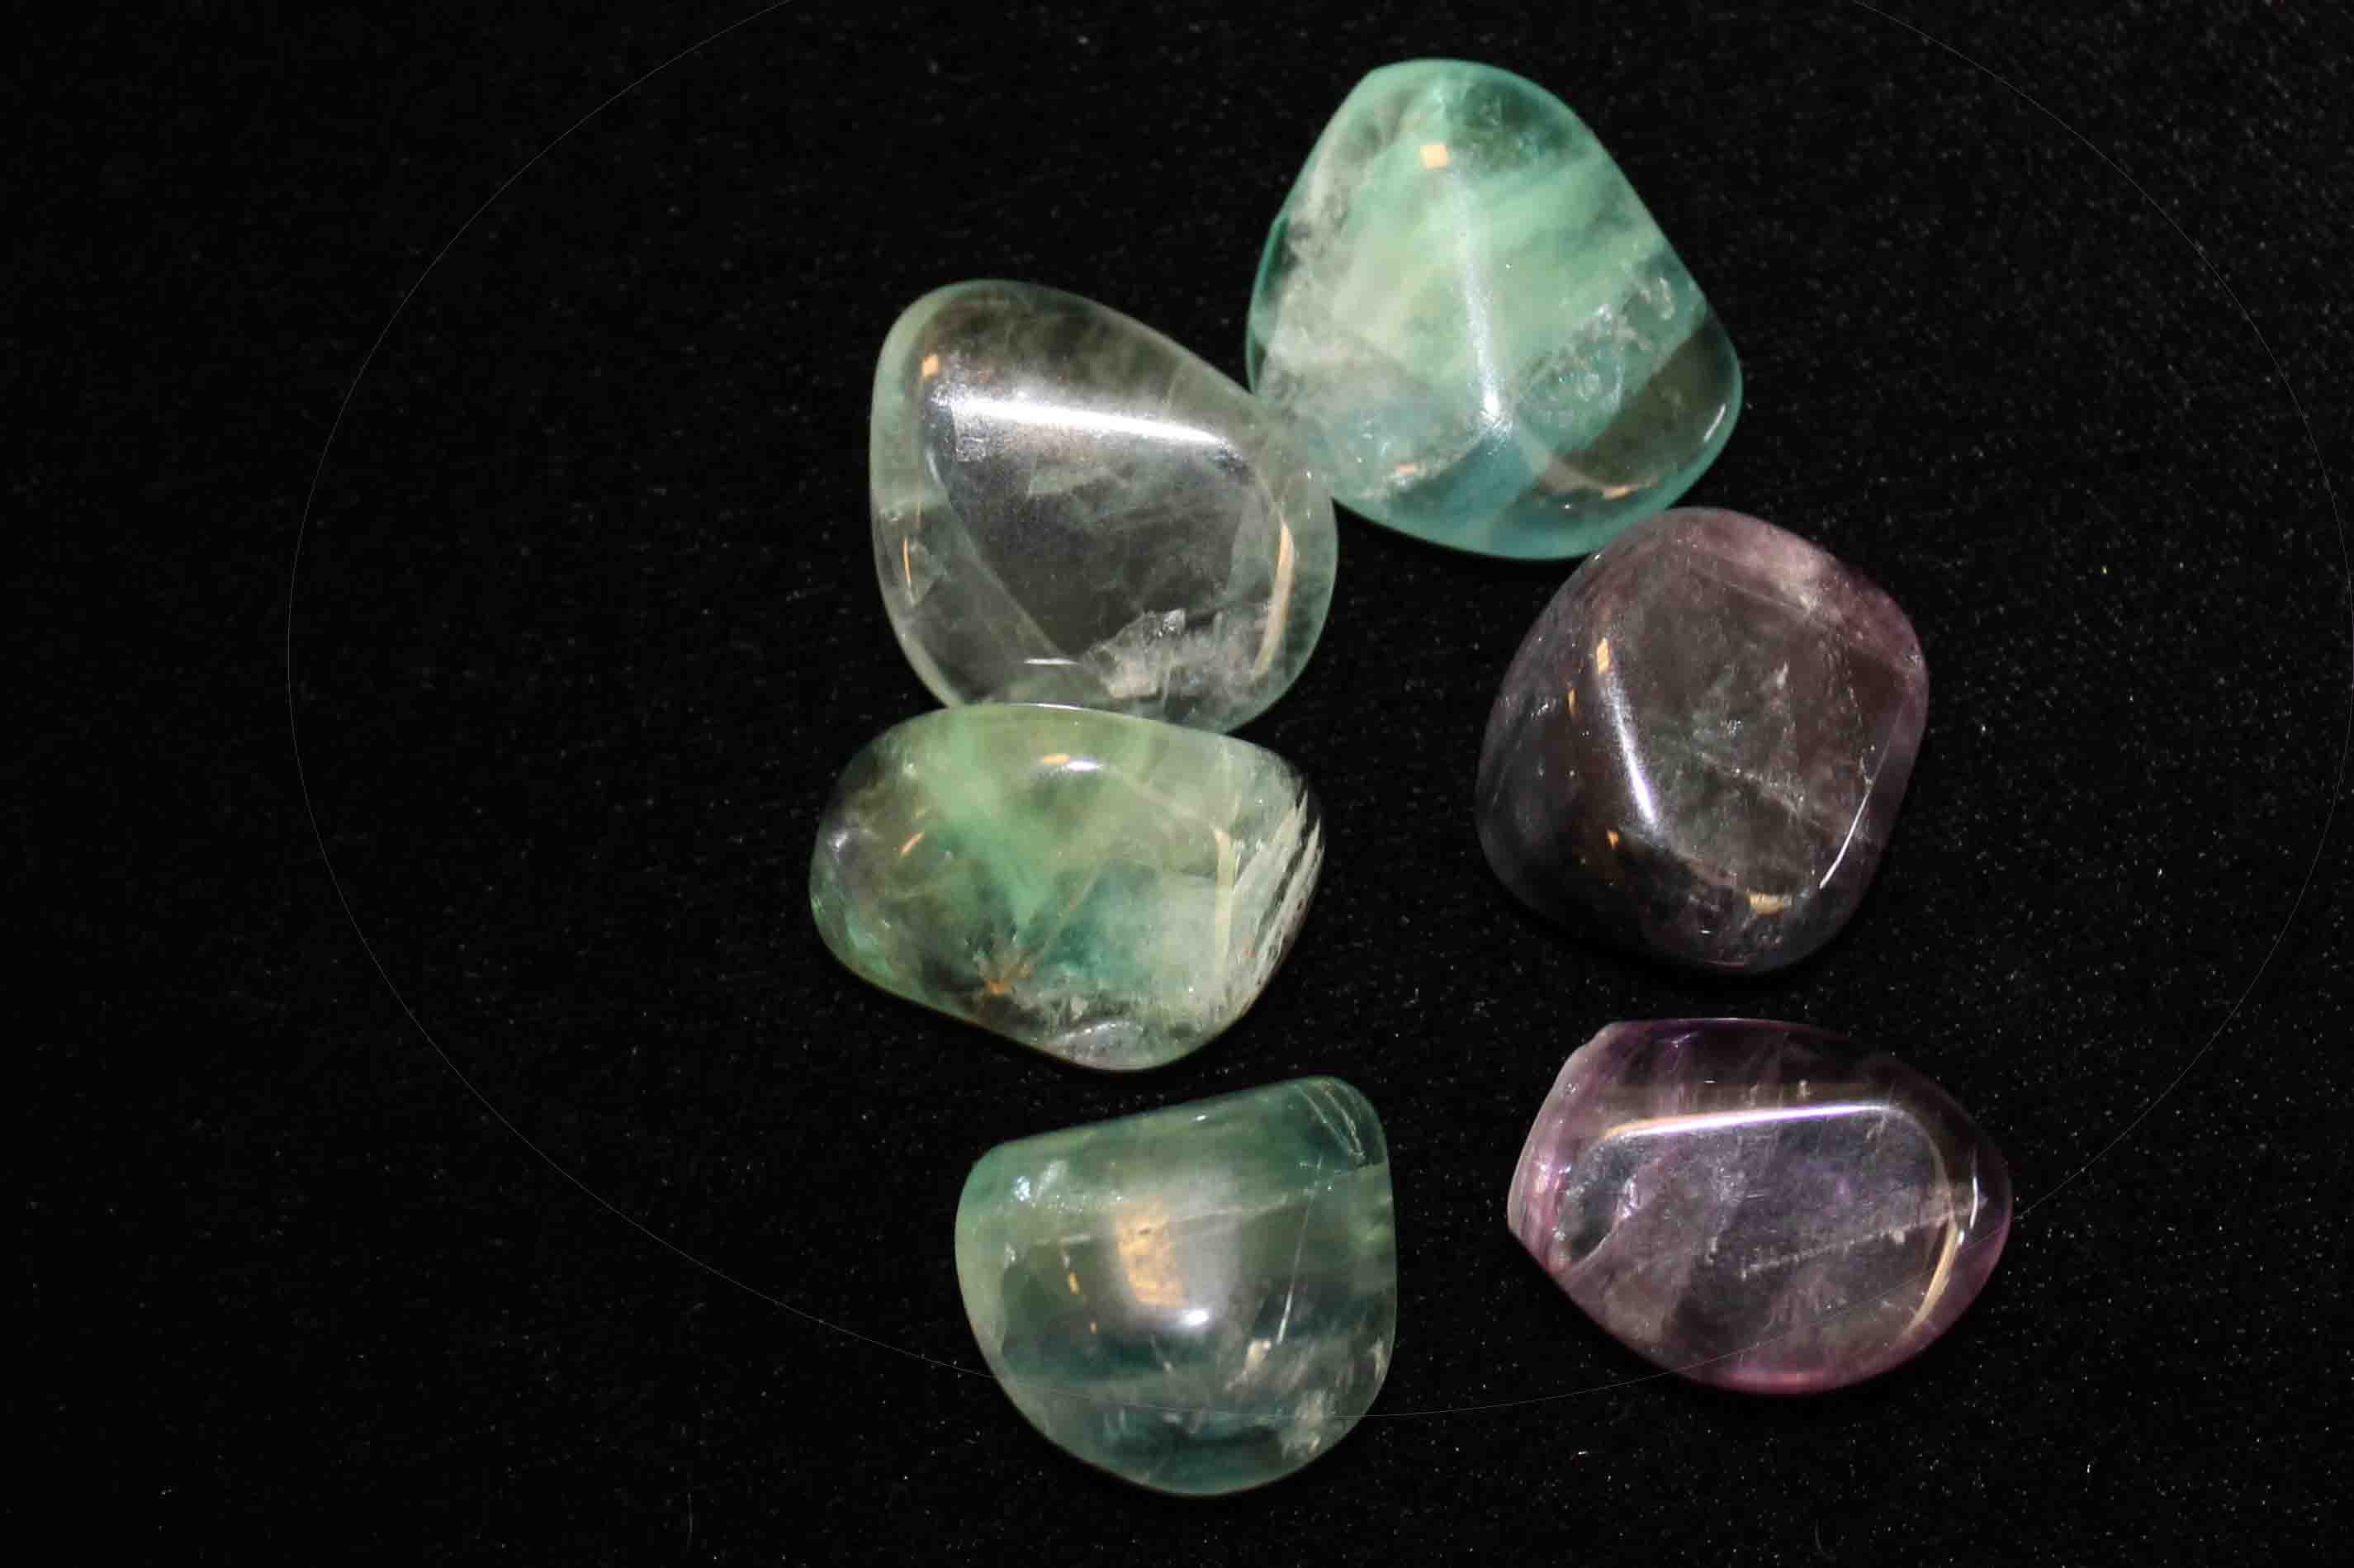 Tumbled fluorite stones in a variety of colors.